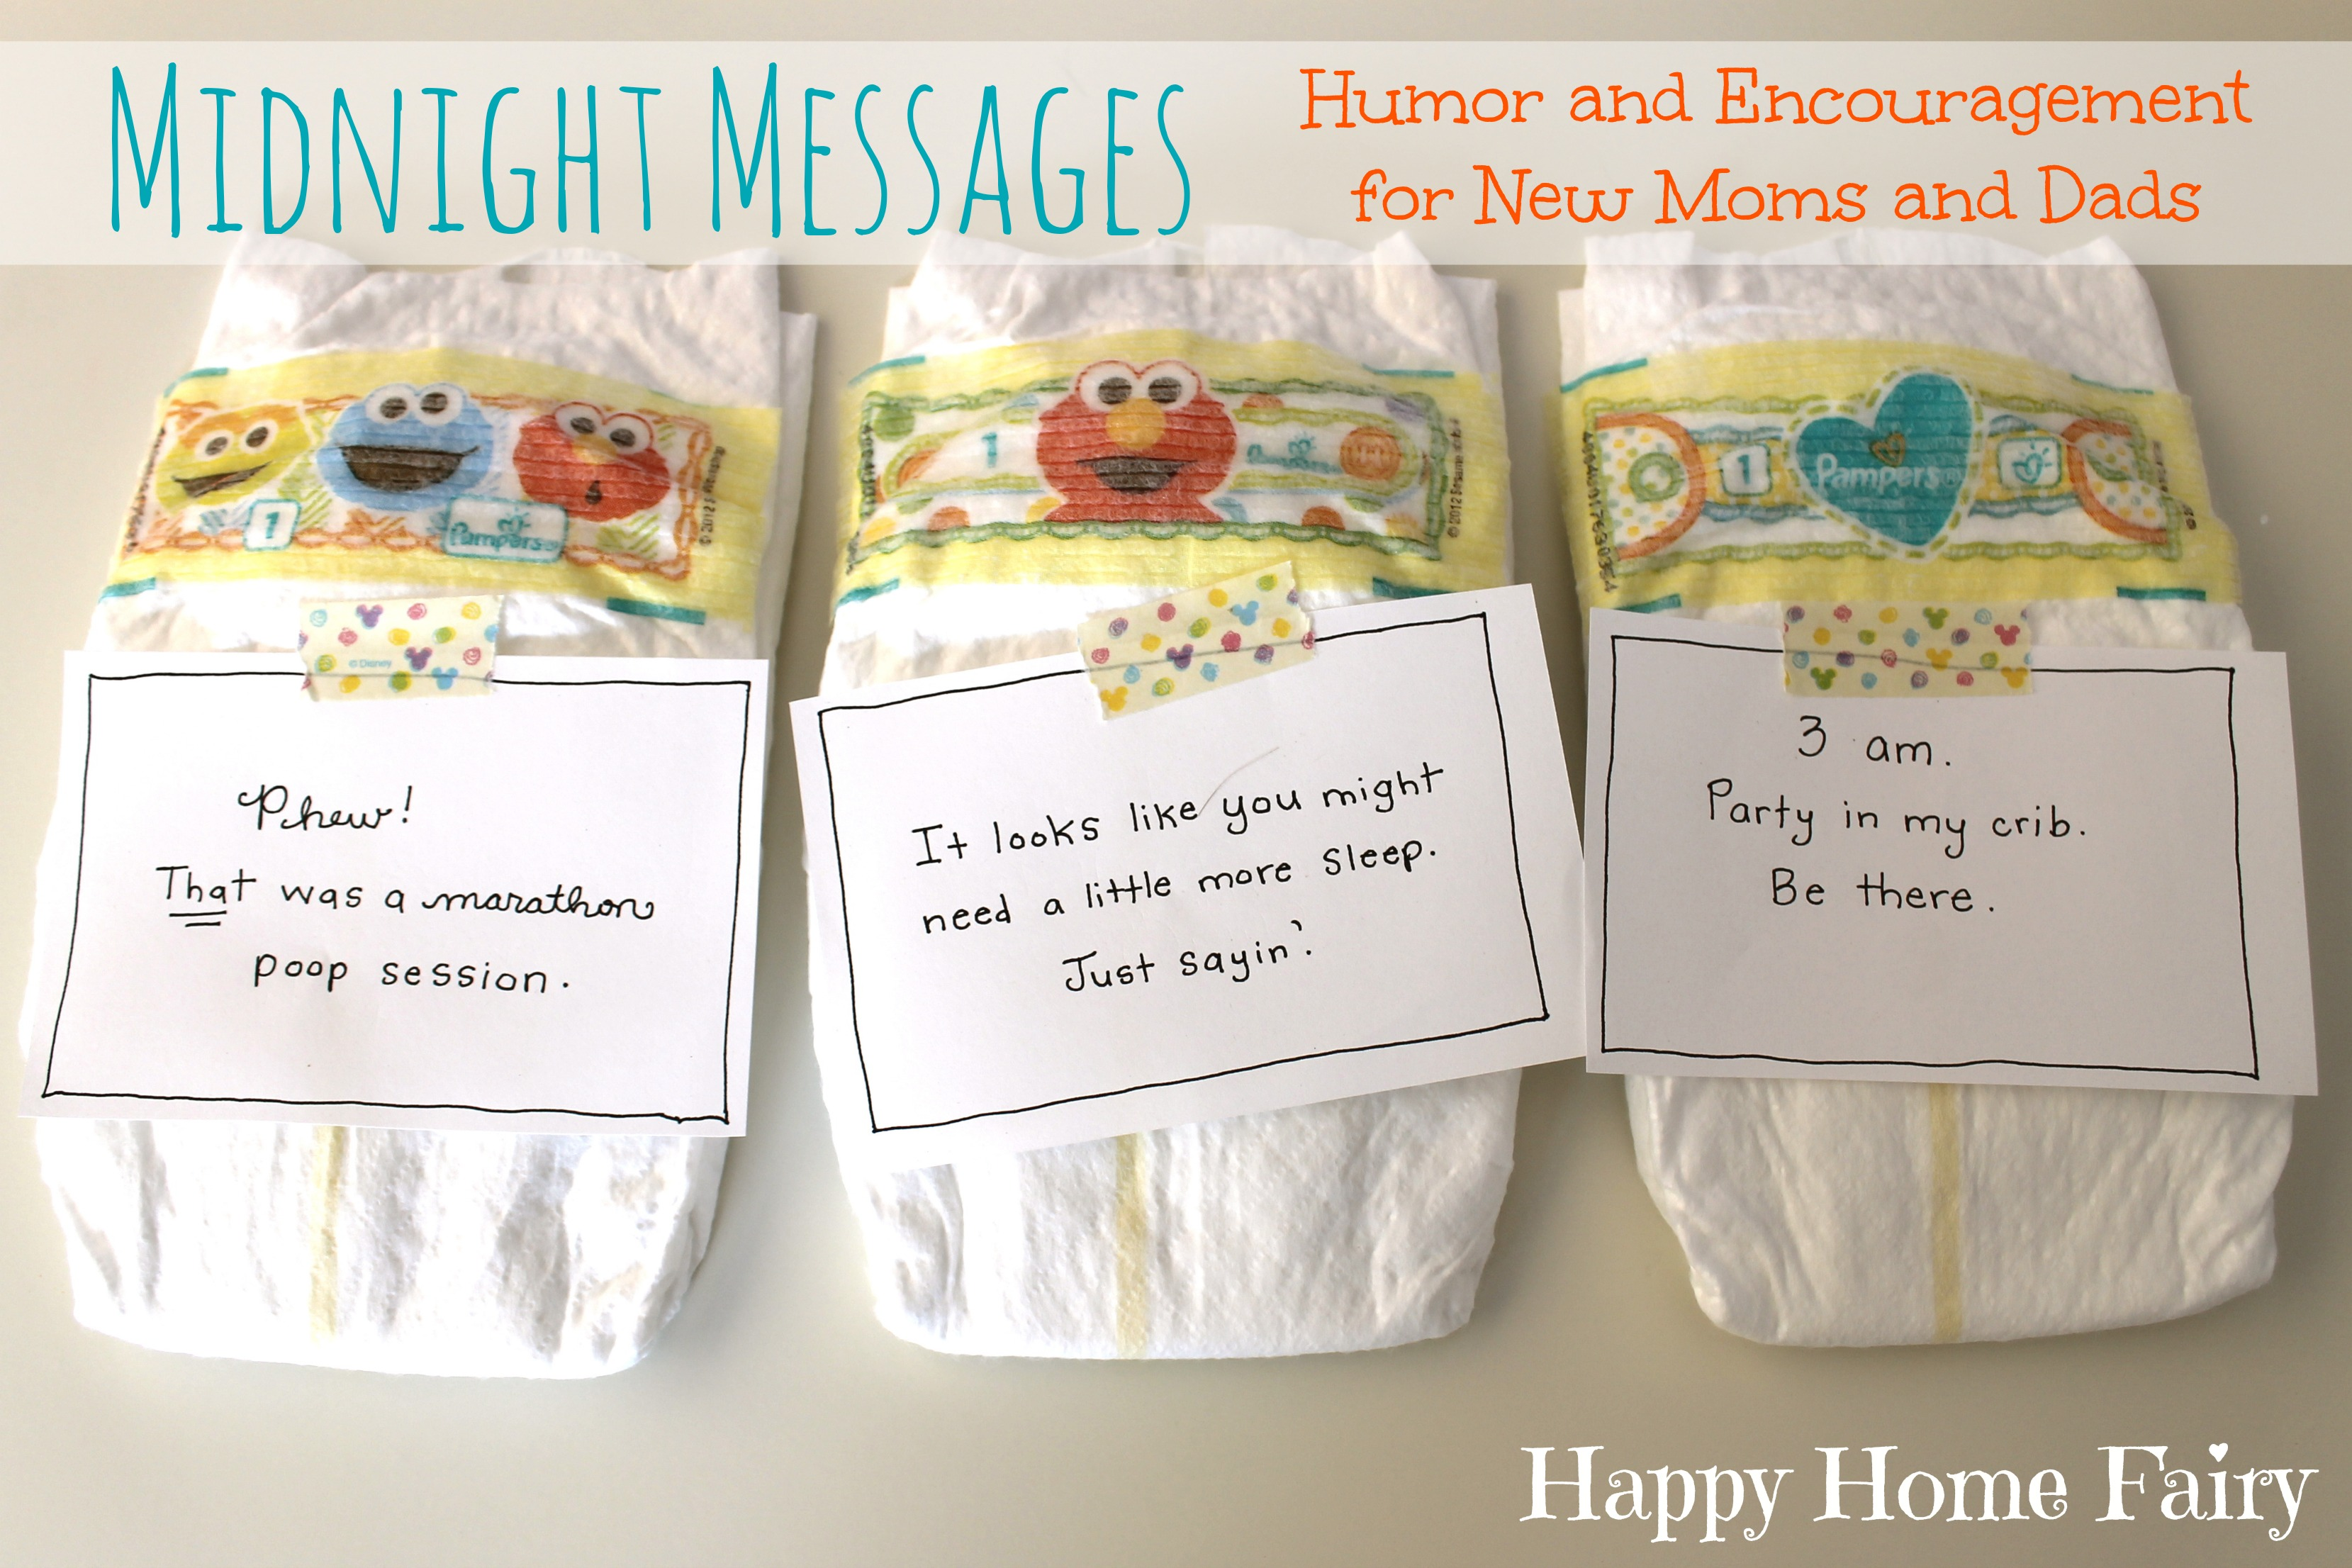 picture regarding Late Night Diaper Messages Free Printable referred to as Midnight Messages for Clean Mommies - Cost-free Printable! - Pleased